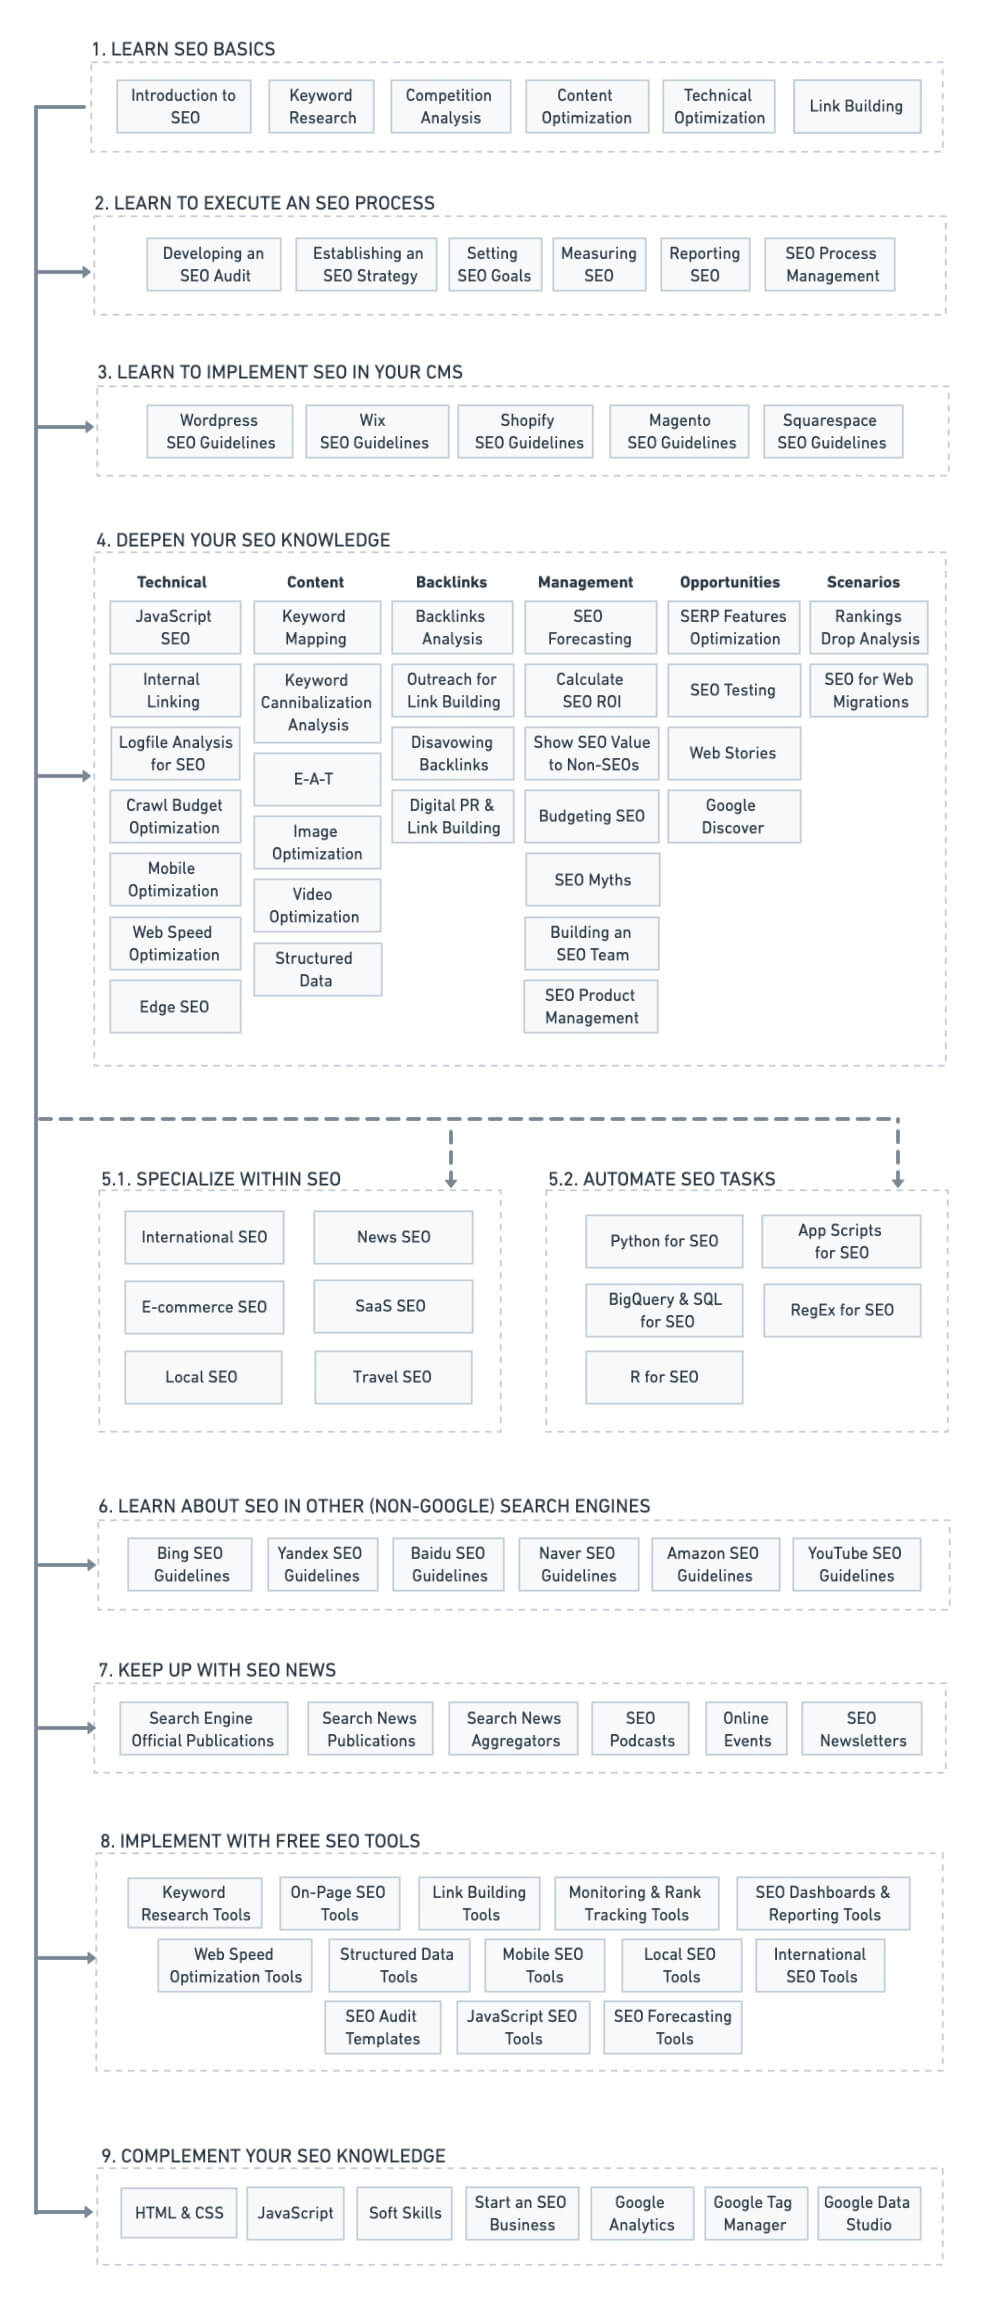 Learning SEO Roadmap - With Free Guides and Tools